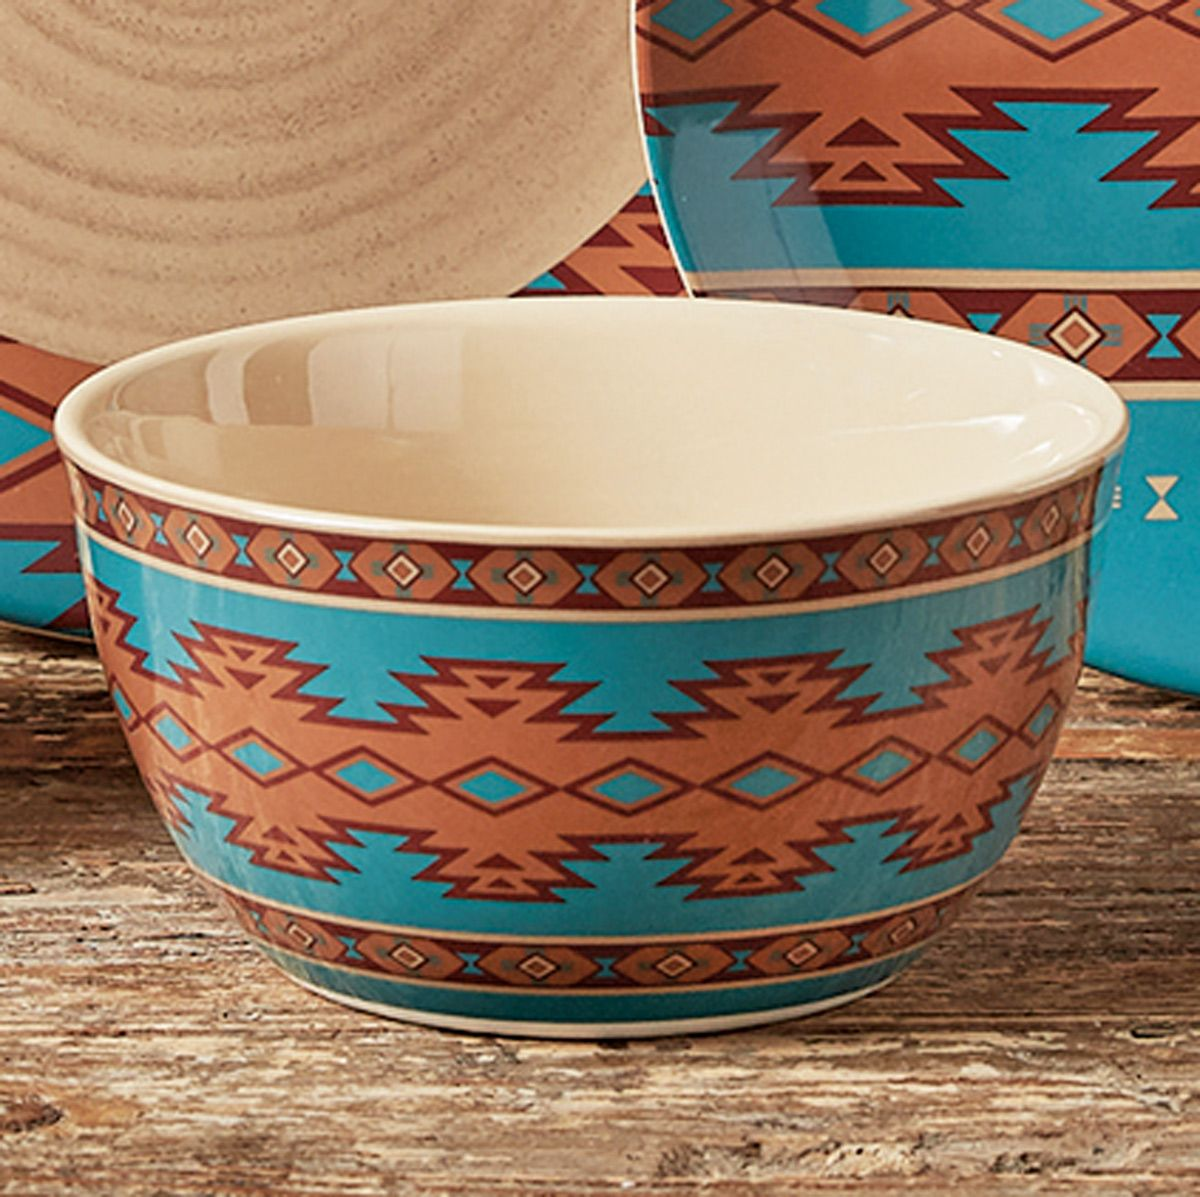 Sky Canyon Cereal Bowl